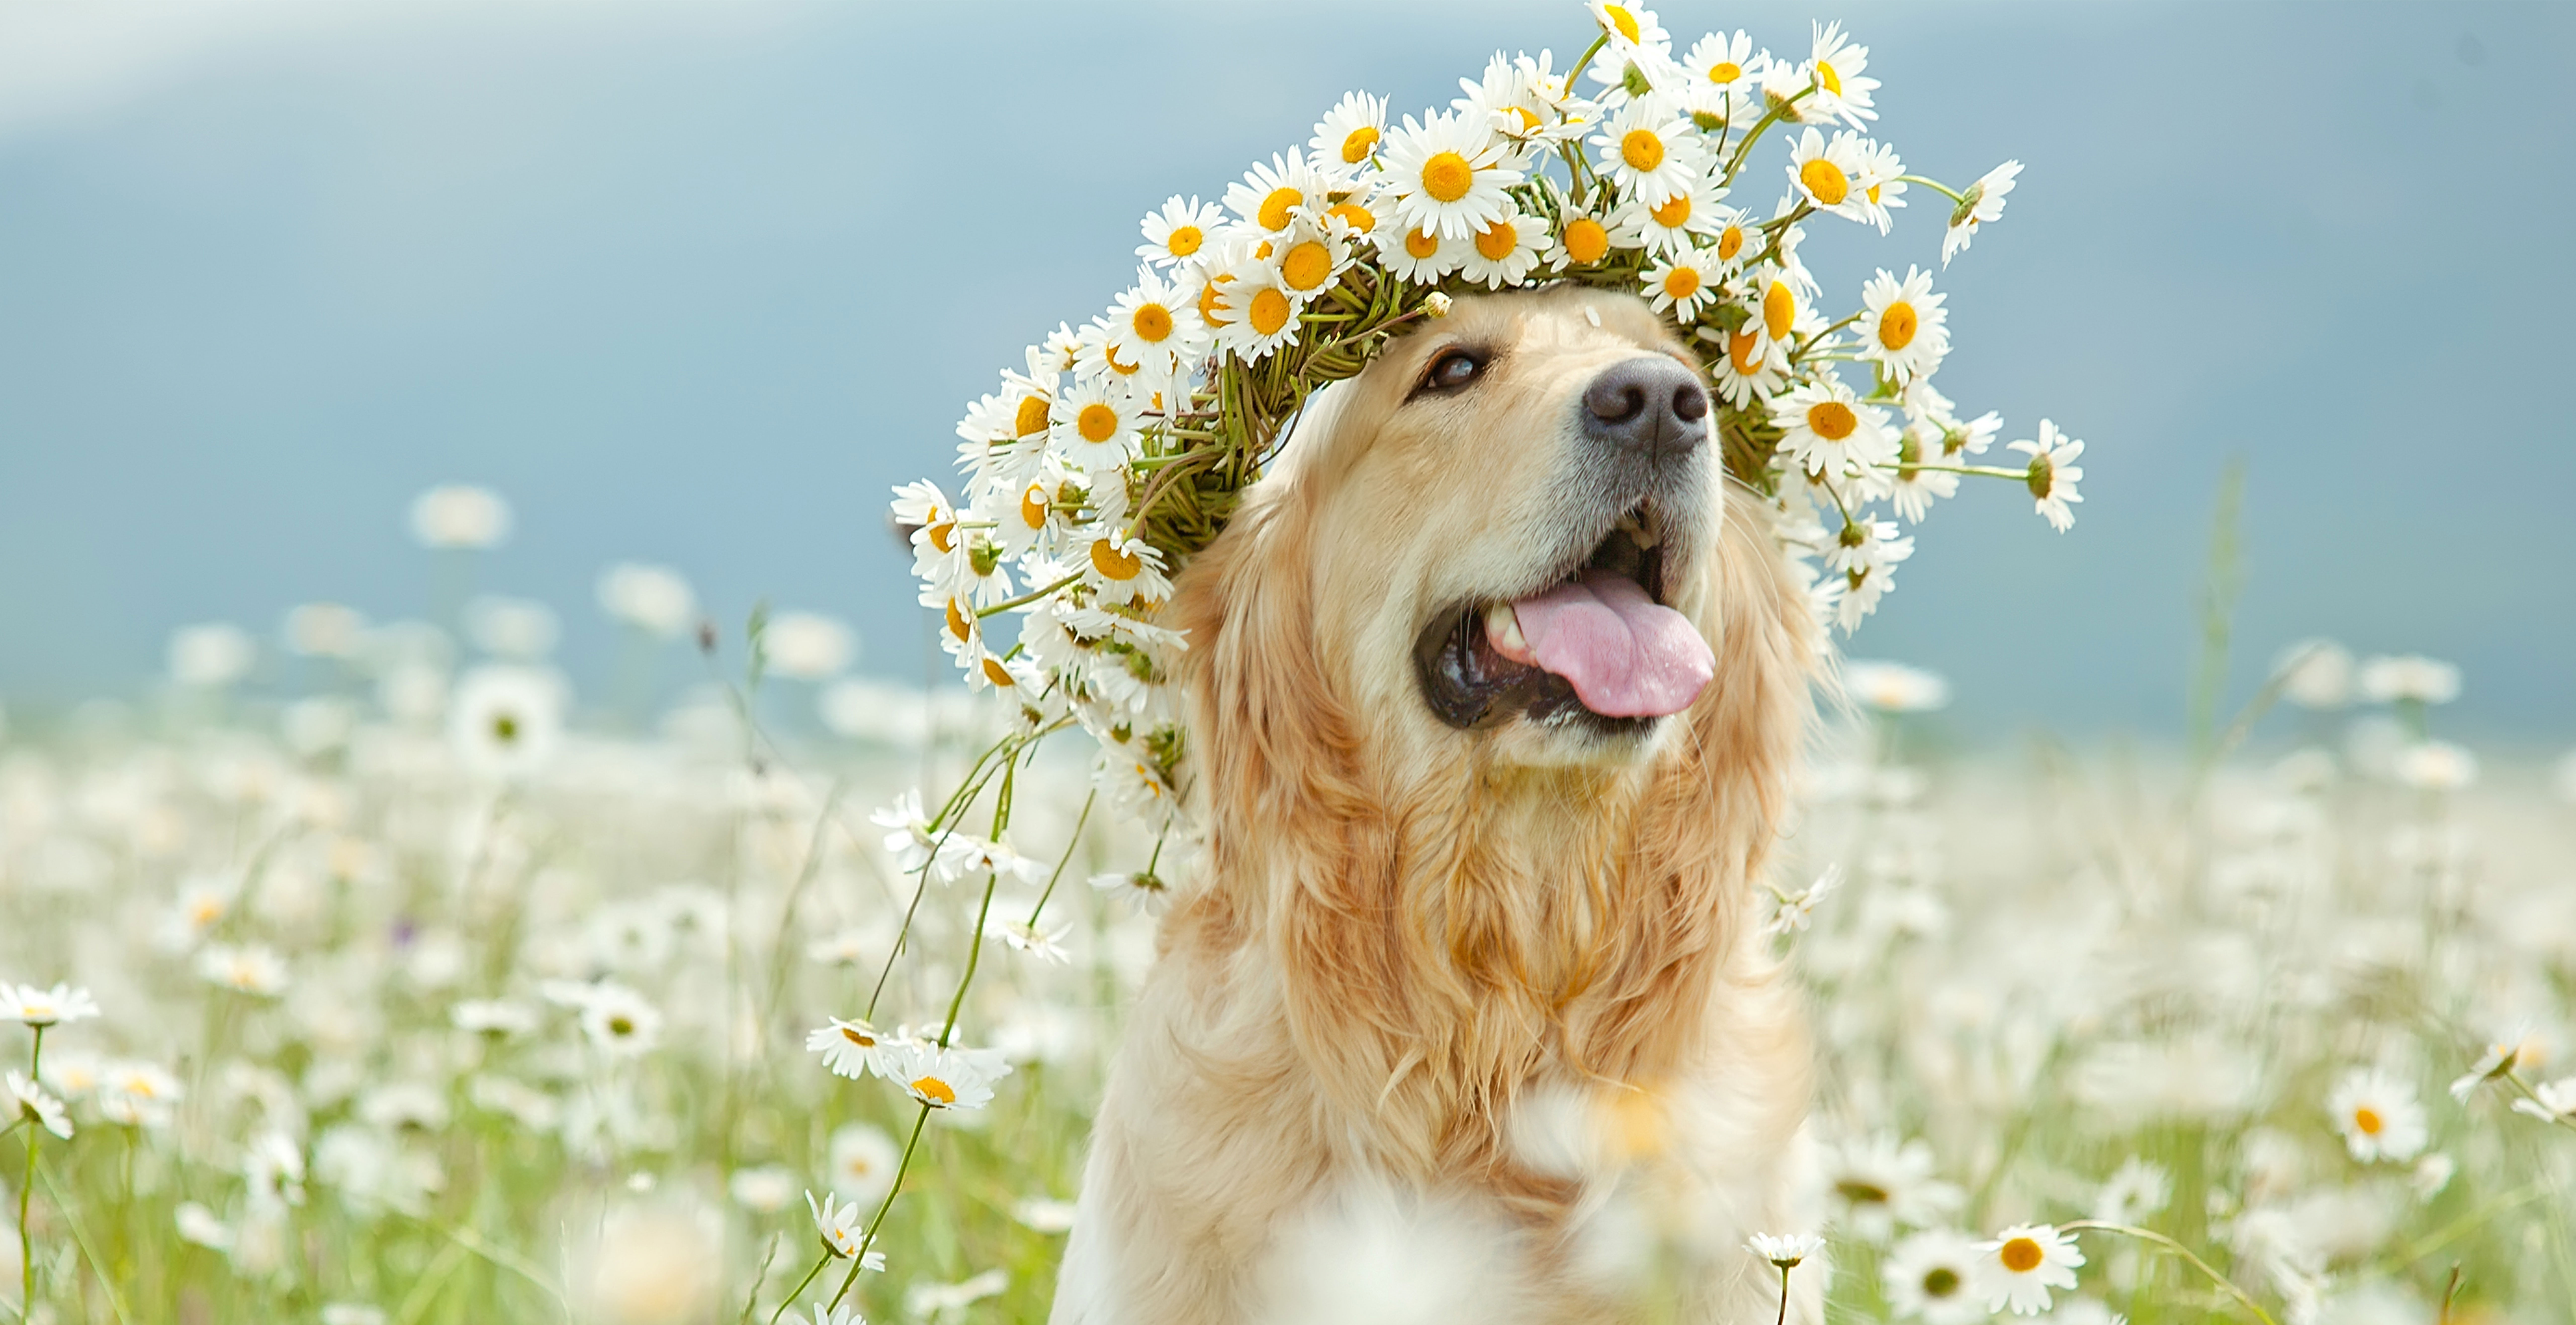 golden retriever do in a field of daisies with a daisy floral crown